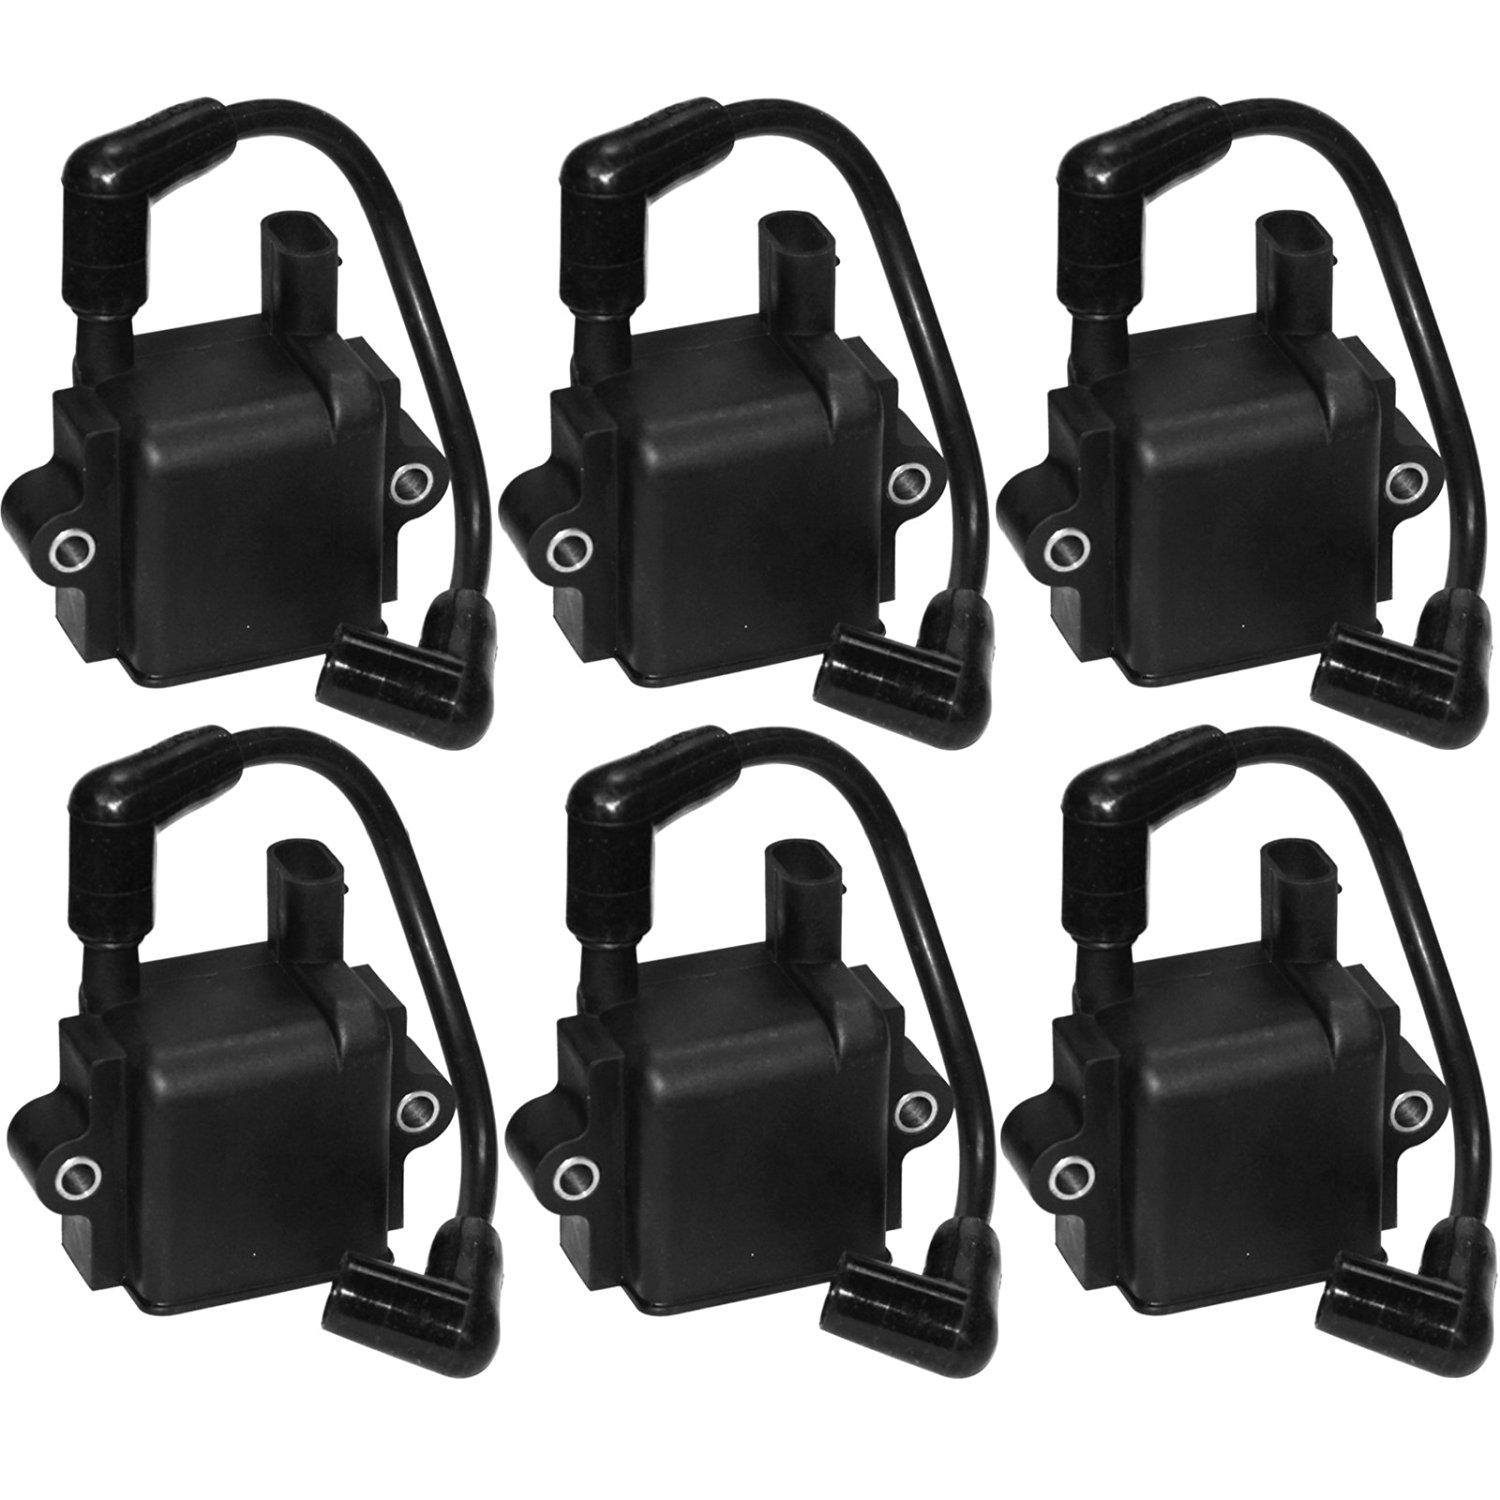 Buy CALTRIC 6-PACK IGNITION COILS Fits MERCURY OUTBOARD 200